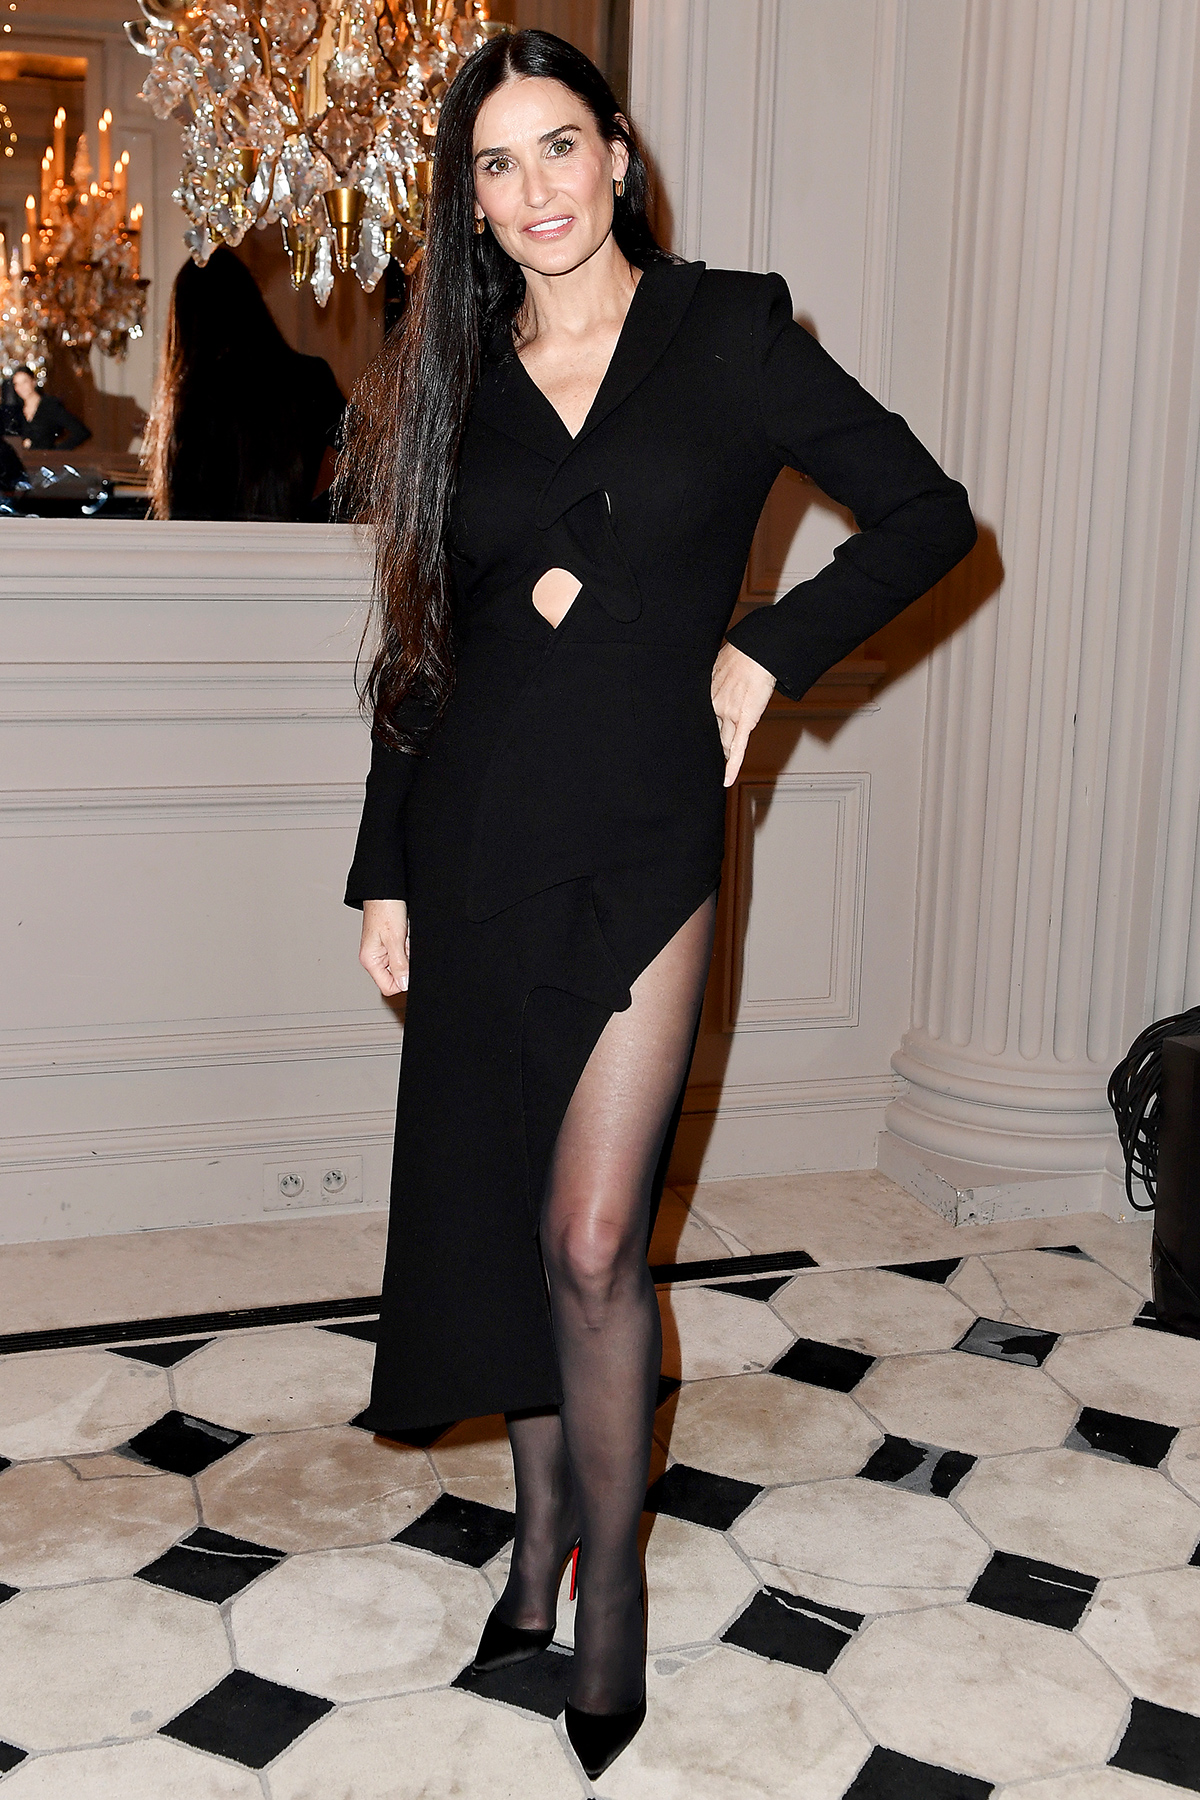 Demi Moore attends the Monot show as part of the Paris Fashion Week Womenswear Fall/Winter 2020/2021 on February 29, 2020 in Paris, France.